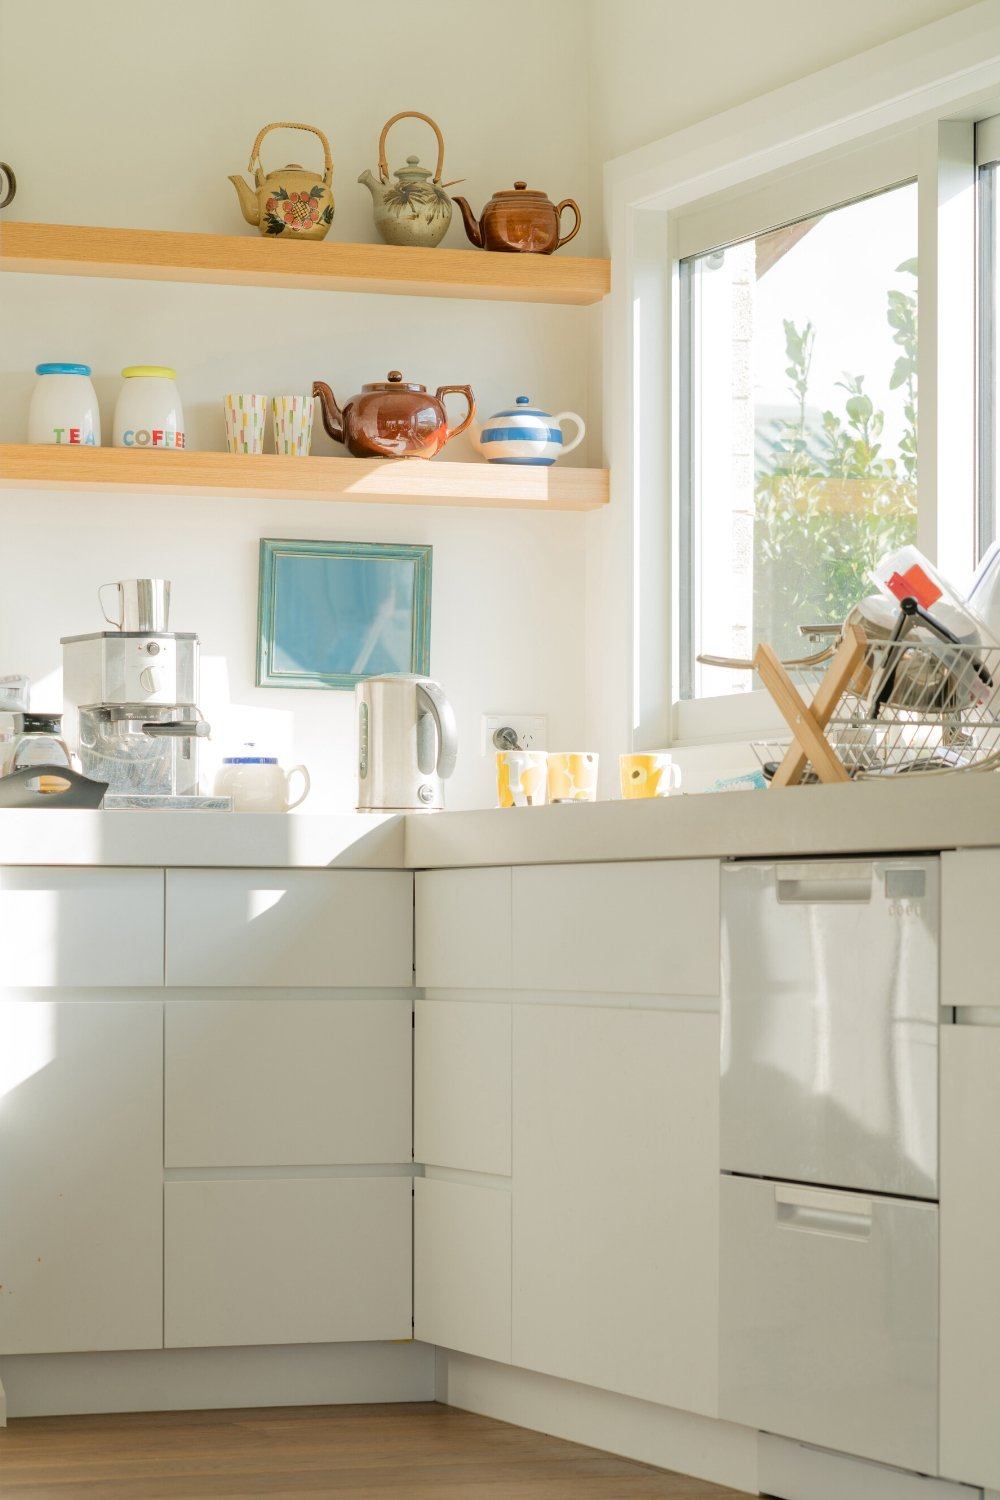 Bright and sunny gluten free kitchen